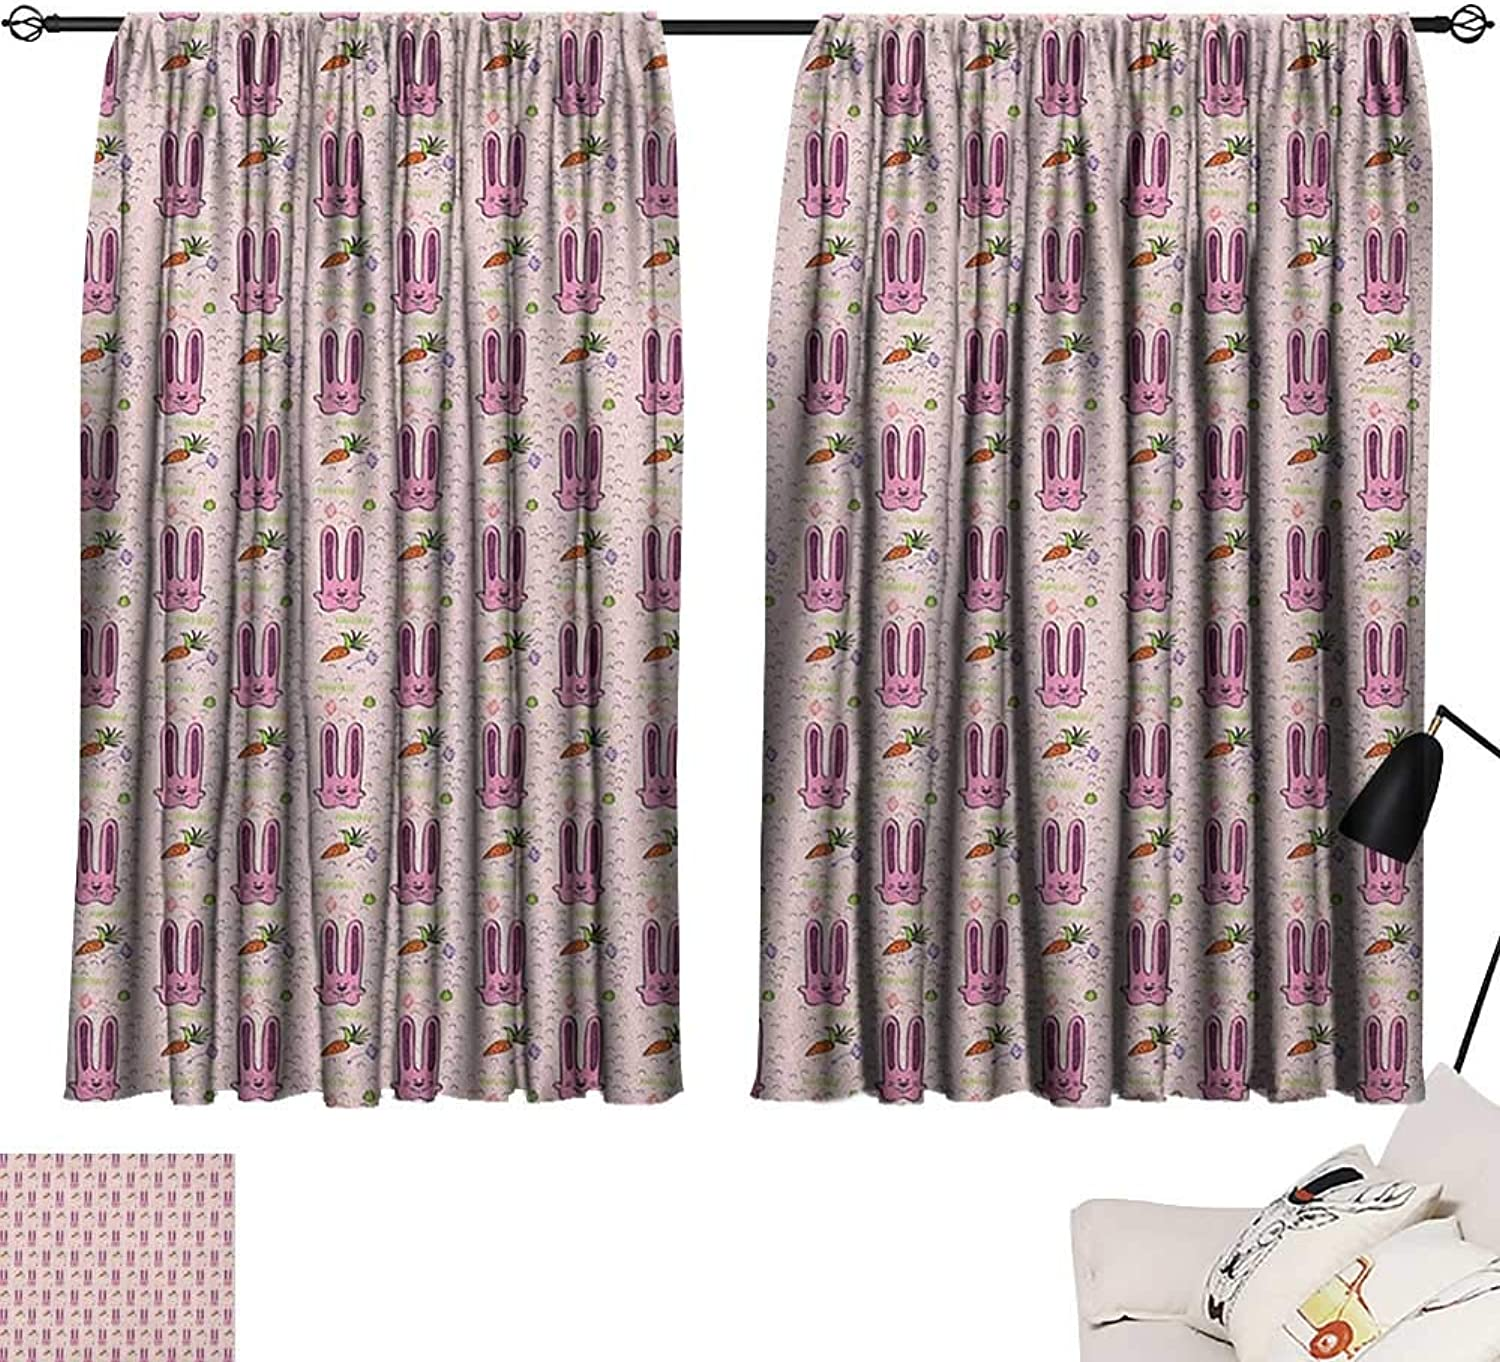 Beihai1Sun Rabbit Modes Darkening Curtains Hand Drawn Style Bunny Characters with Long Ears and Carreds Cartoon Style for Kids Curtain for Living Room Multicolor W63 x L45